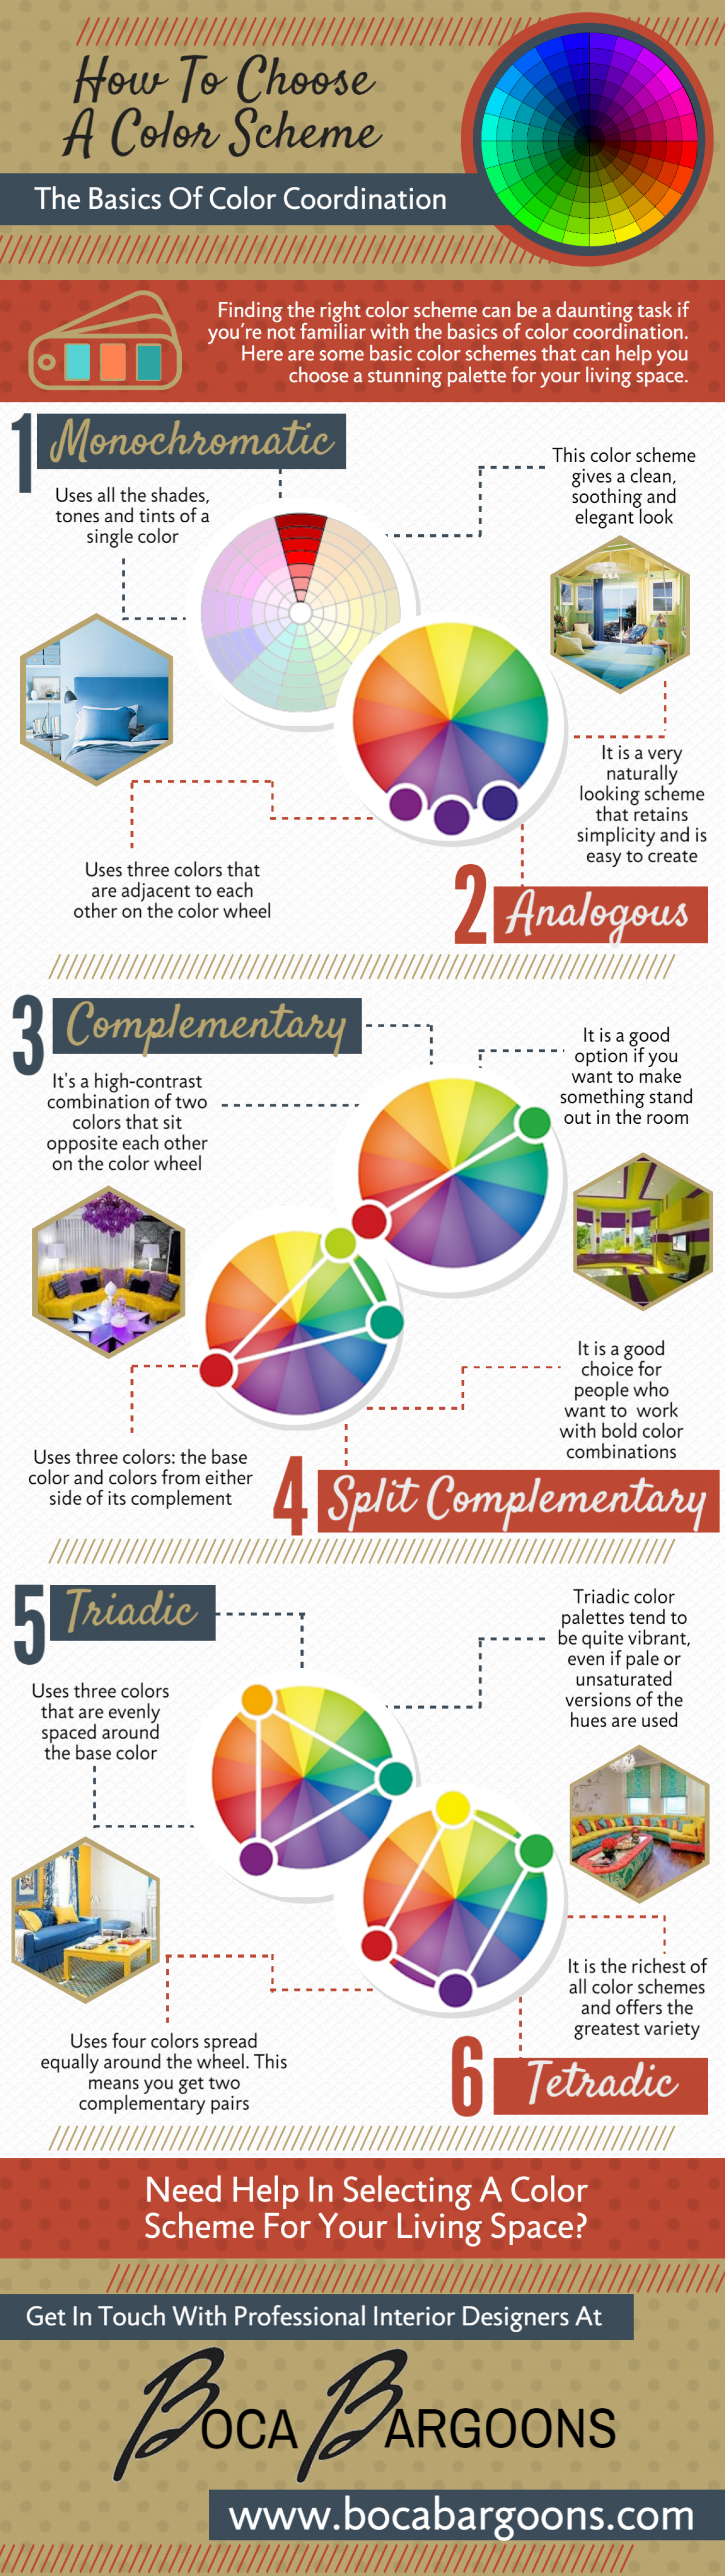 How to choose a color scheme Infographic